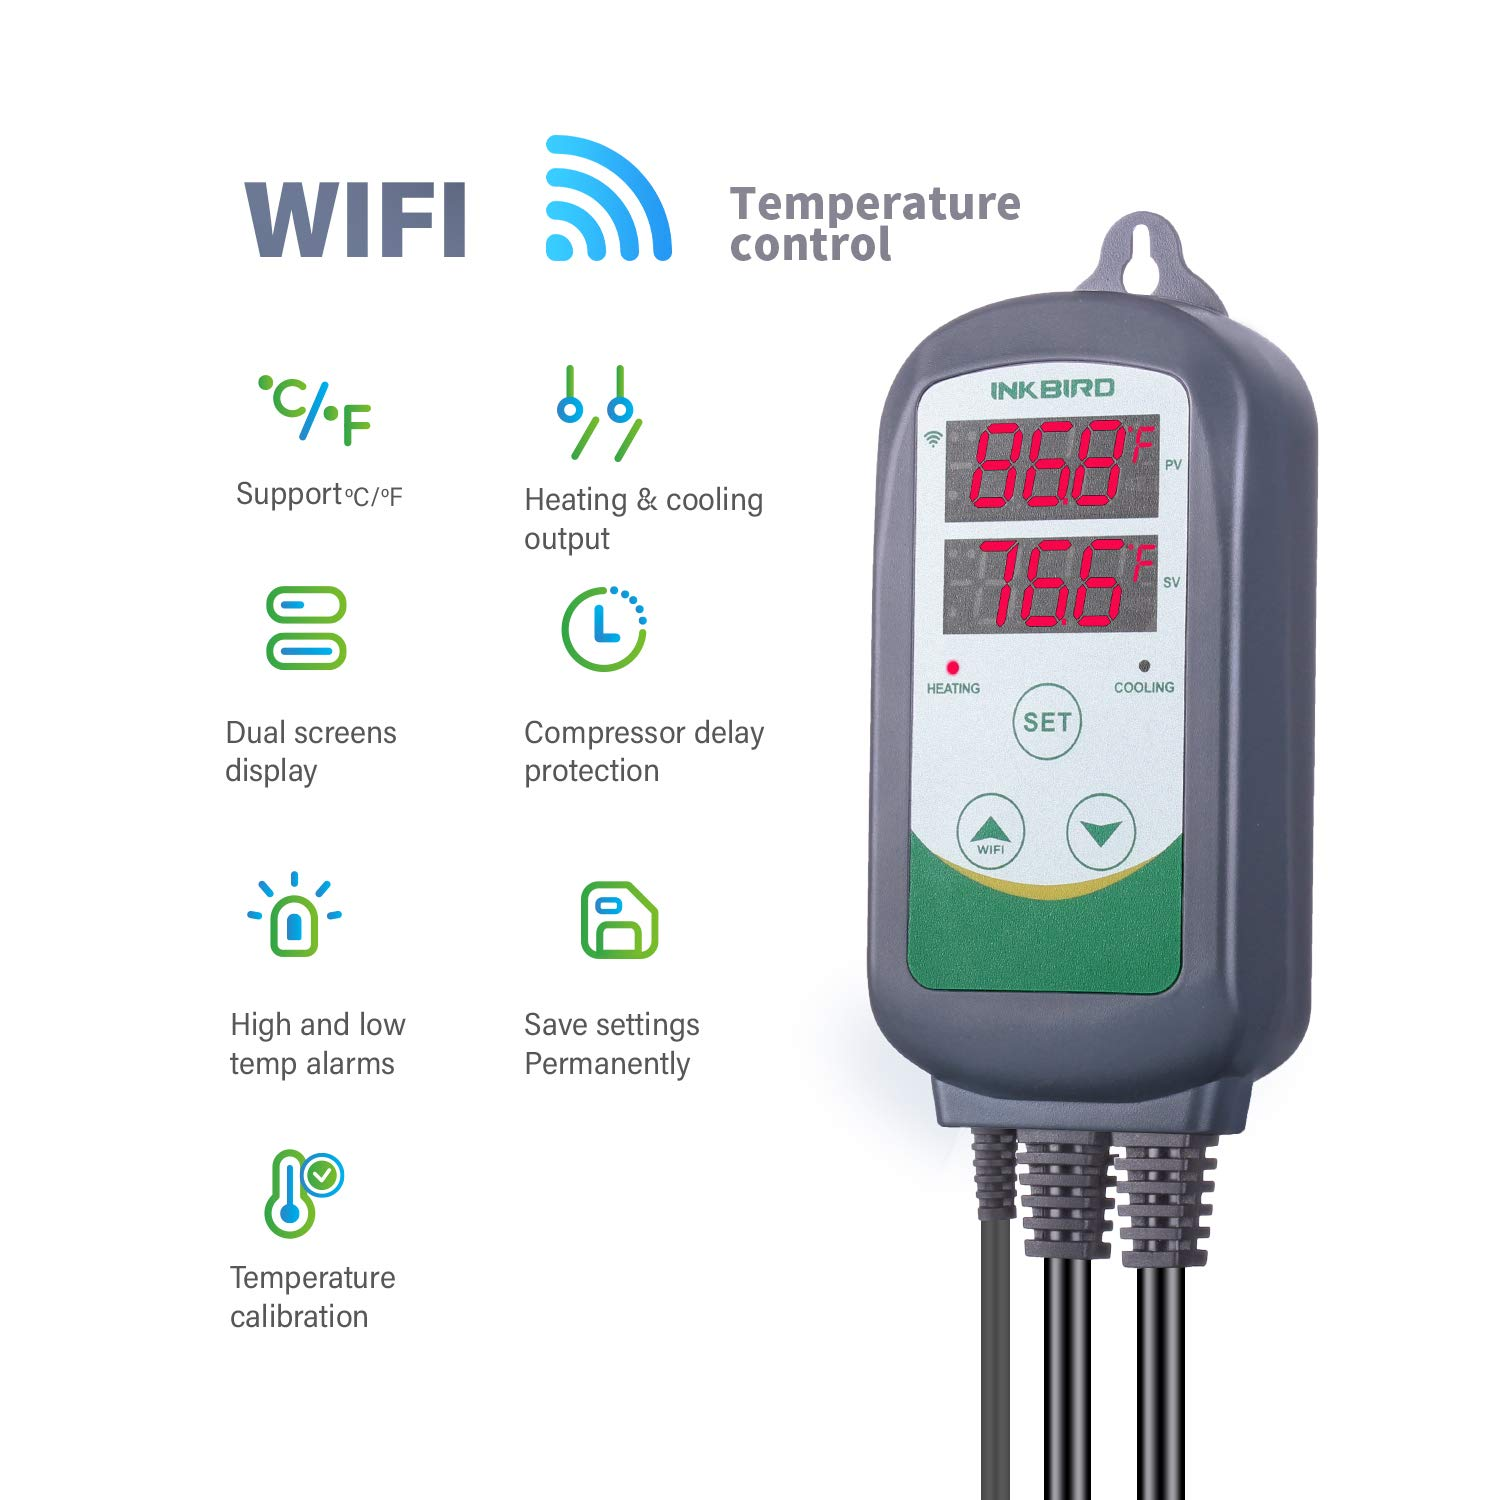 Inkbird WIFI Temperature Controller Reptile Freezer Thermostat ITC308 2.4GHz Digital Heating and Cooling Aquarium Heater Cooler Greenhouse Plug Outlet Probe Dual Stage 1100W 110V by Inkbird (Image #4)